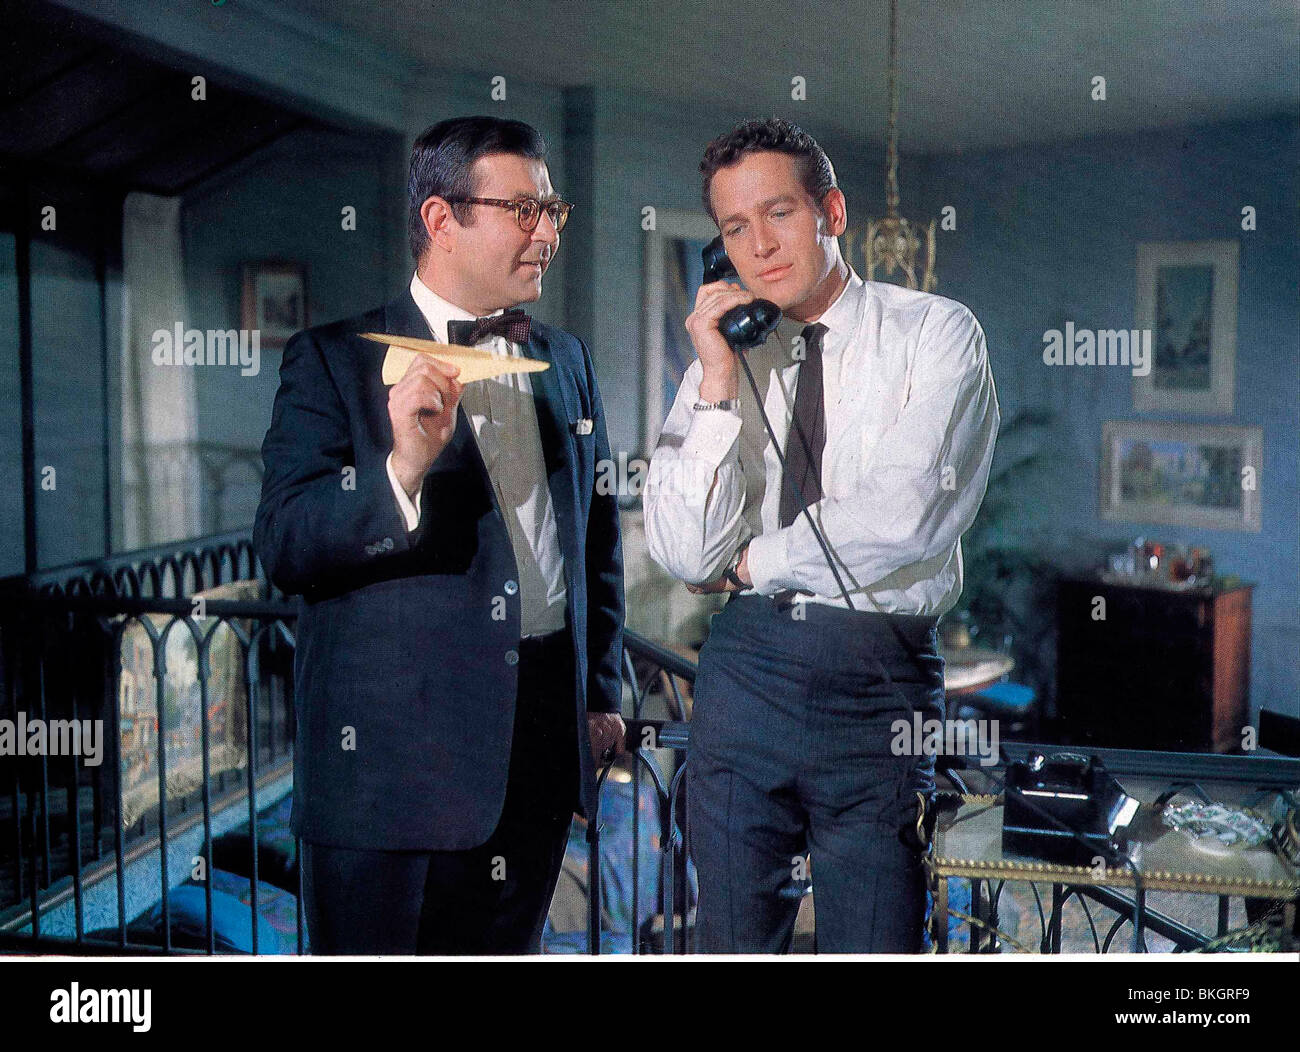 A NEW KIND OF LOVE (1963) MARVIN KAPLAN, PAUL NEWMAN NKOL 015 - Stock Image